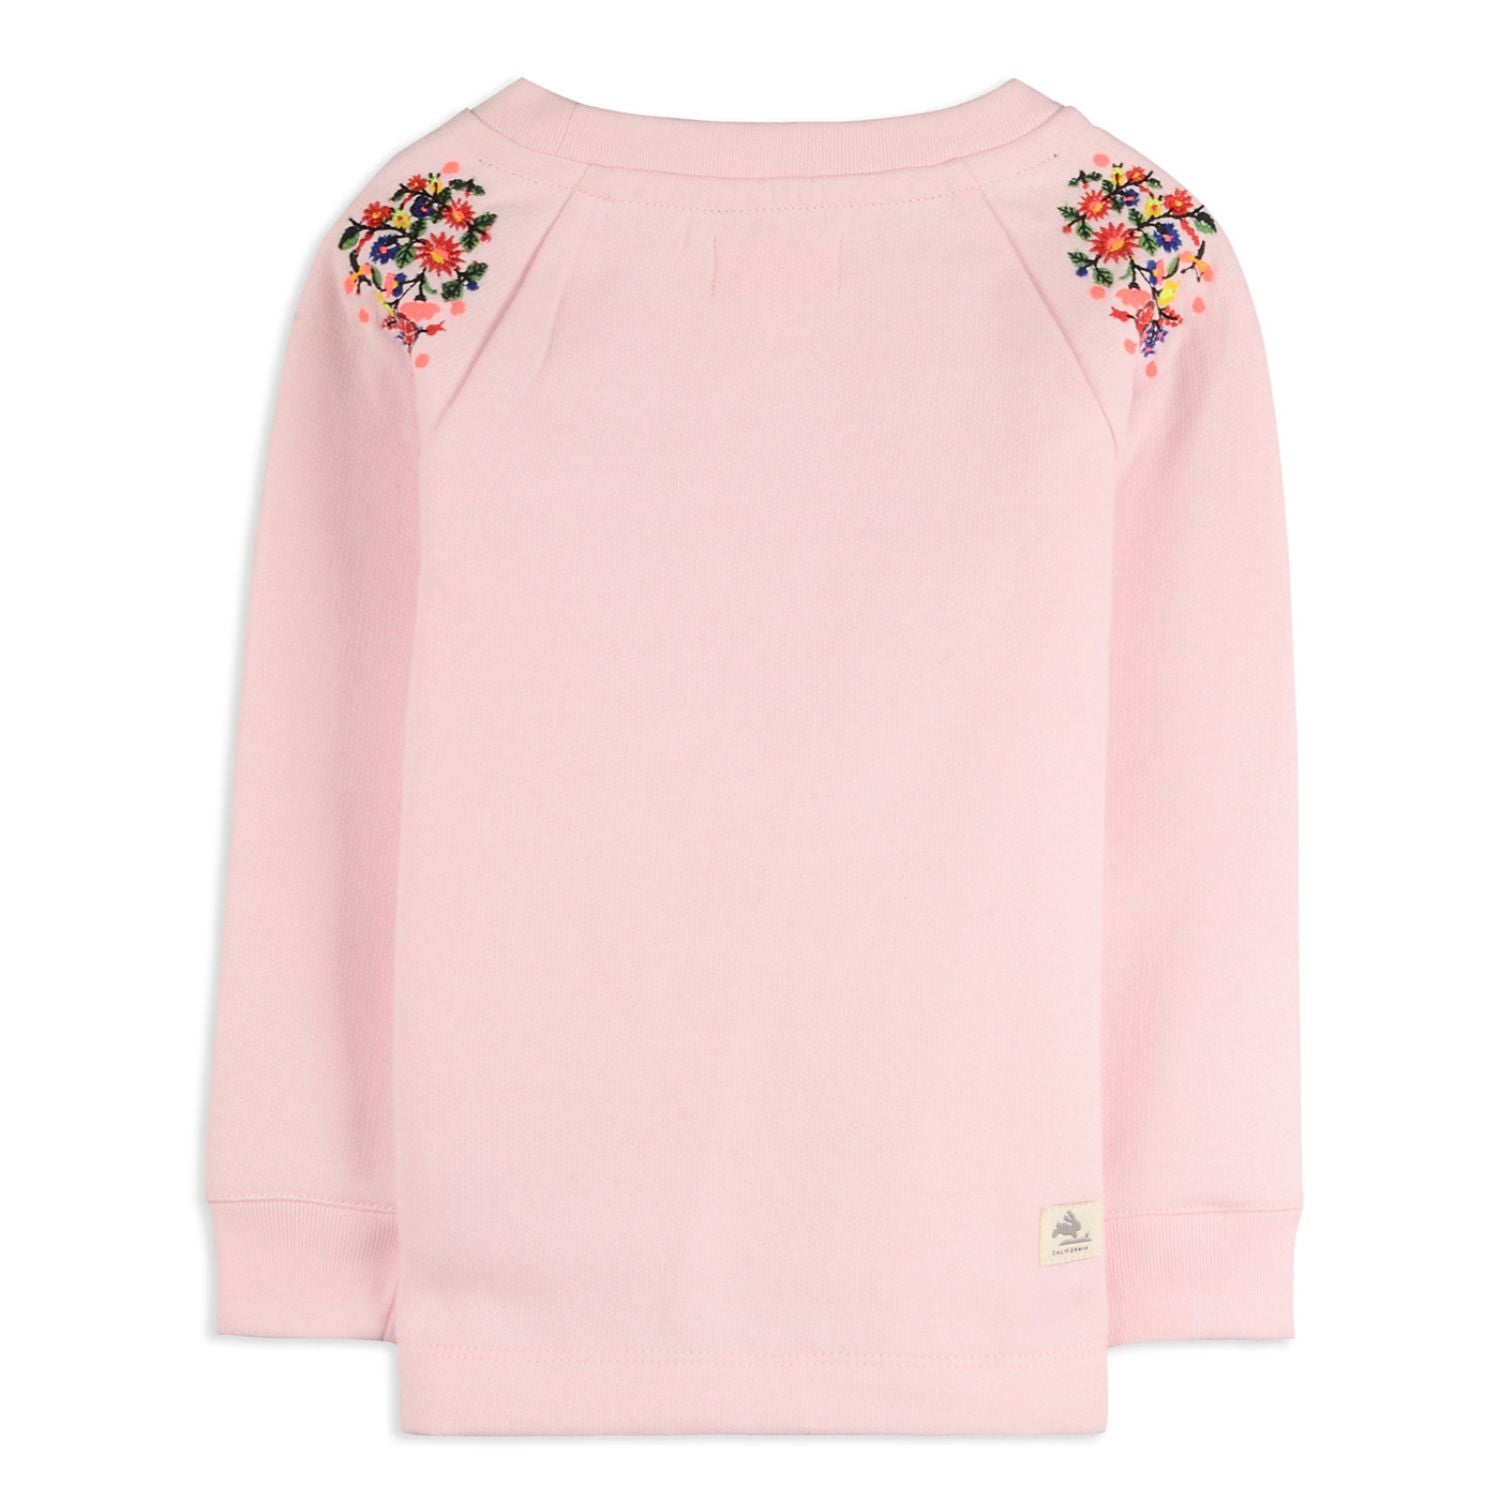 Tiny Leaf Sweatshirt for Girls